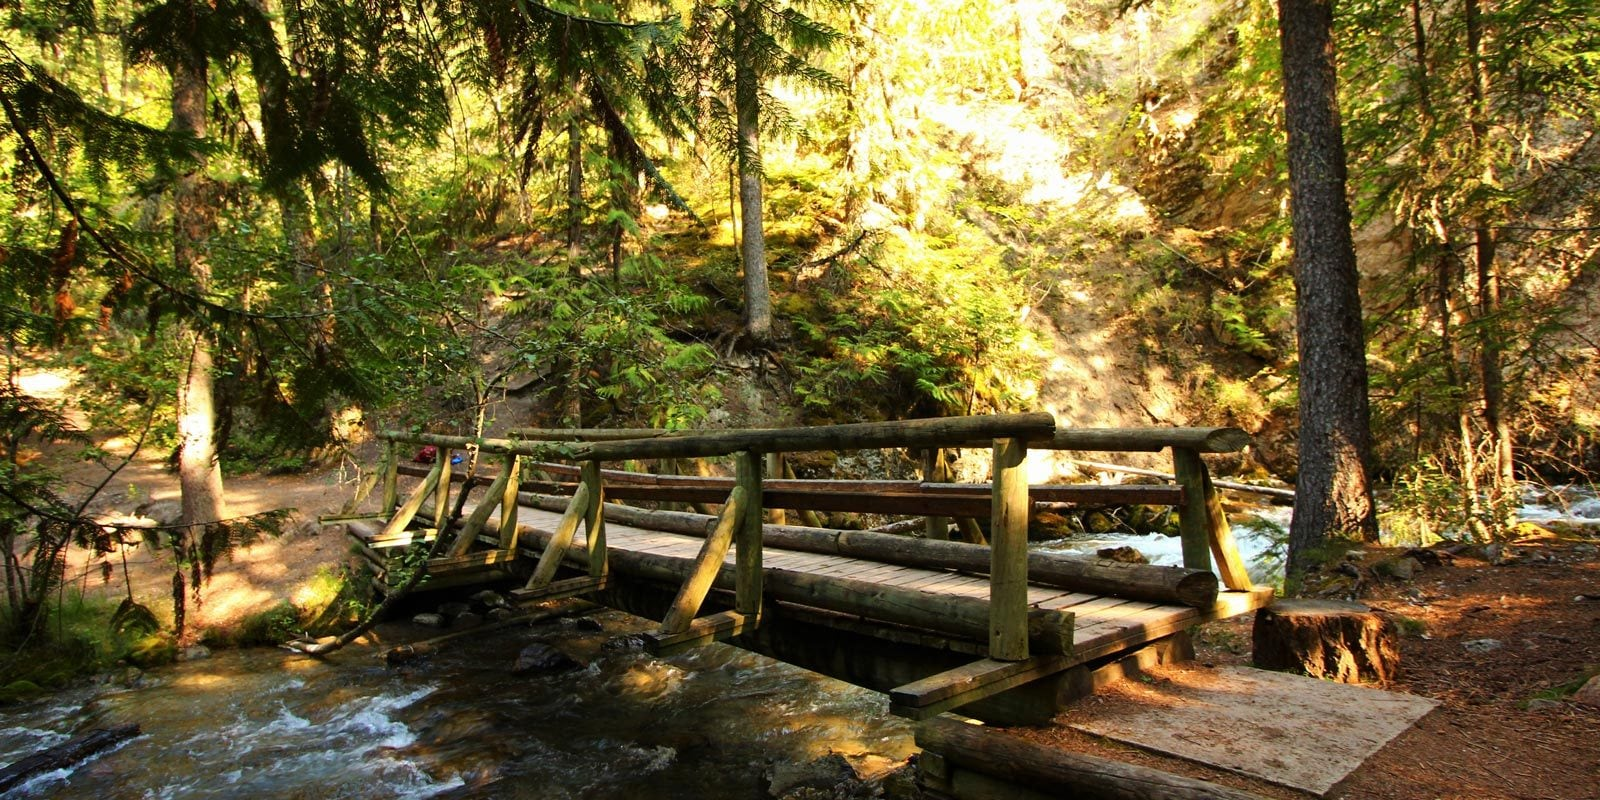 09-Sept.-Juniper-Trail-Bridge-by-Lauren-Logan